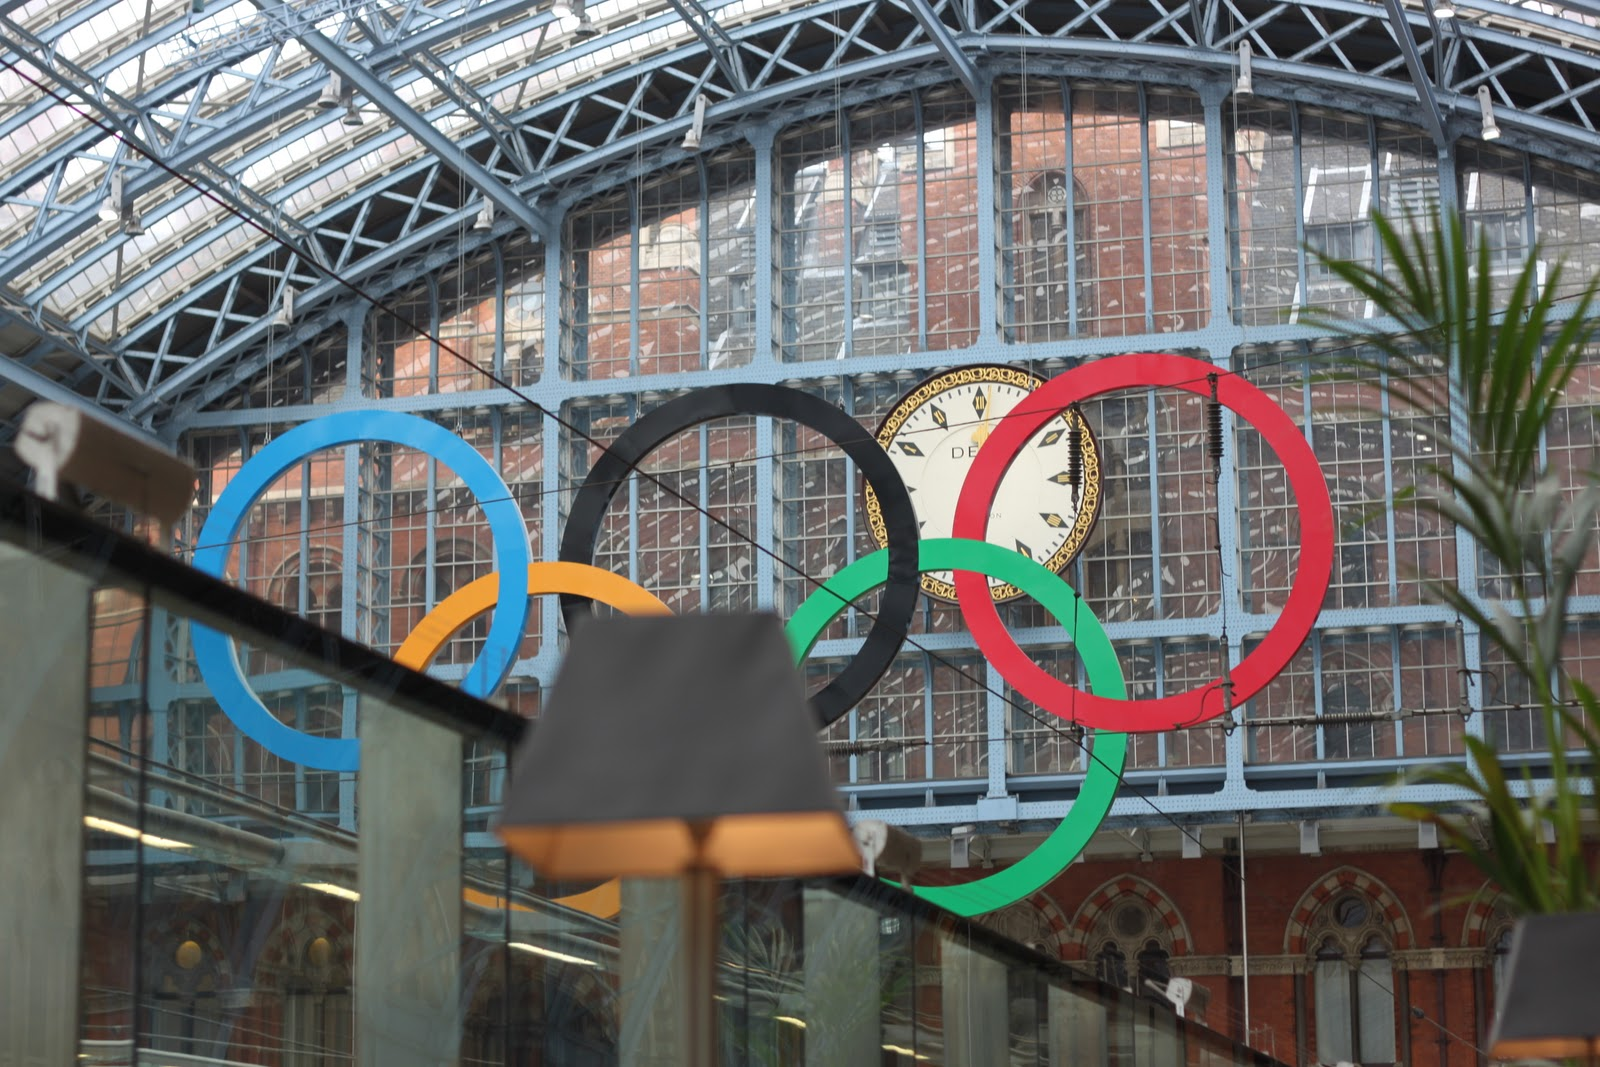 Olympic symbol at King's Cross Saint Pancras